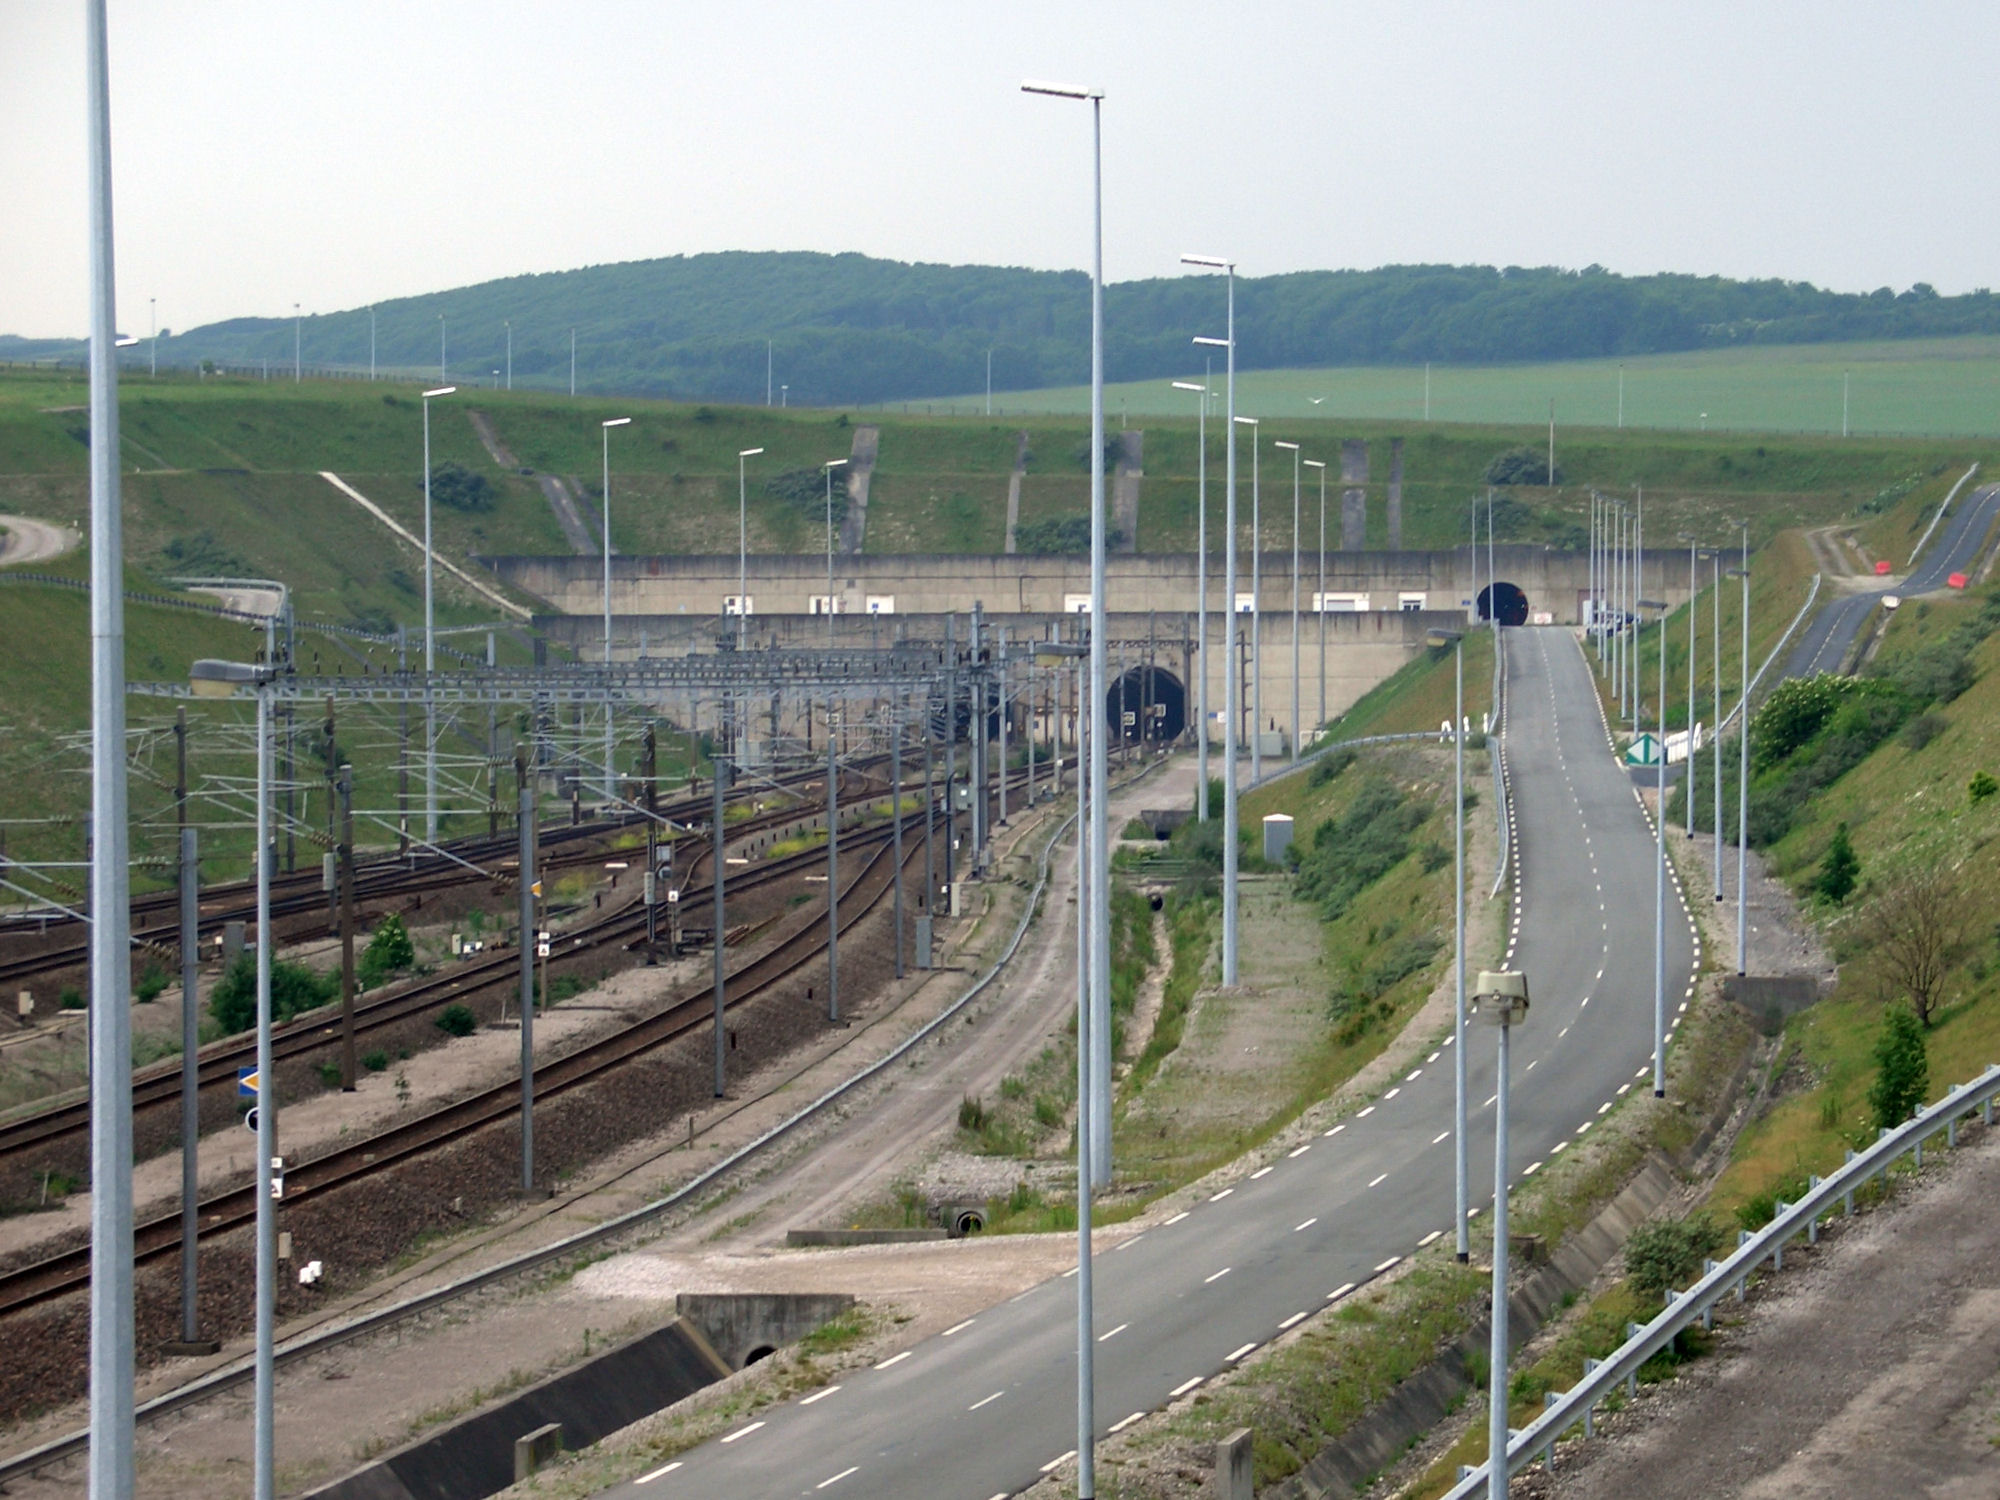 Coquelles France  city photo : Eurotunnel Coquelles 2008 Wikipedia, the free encyclopedia